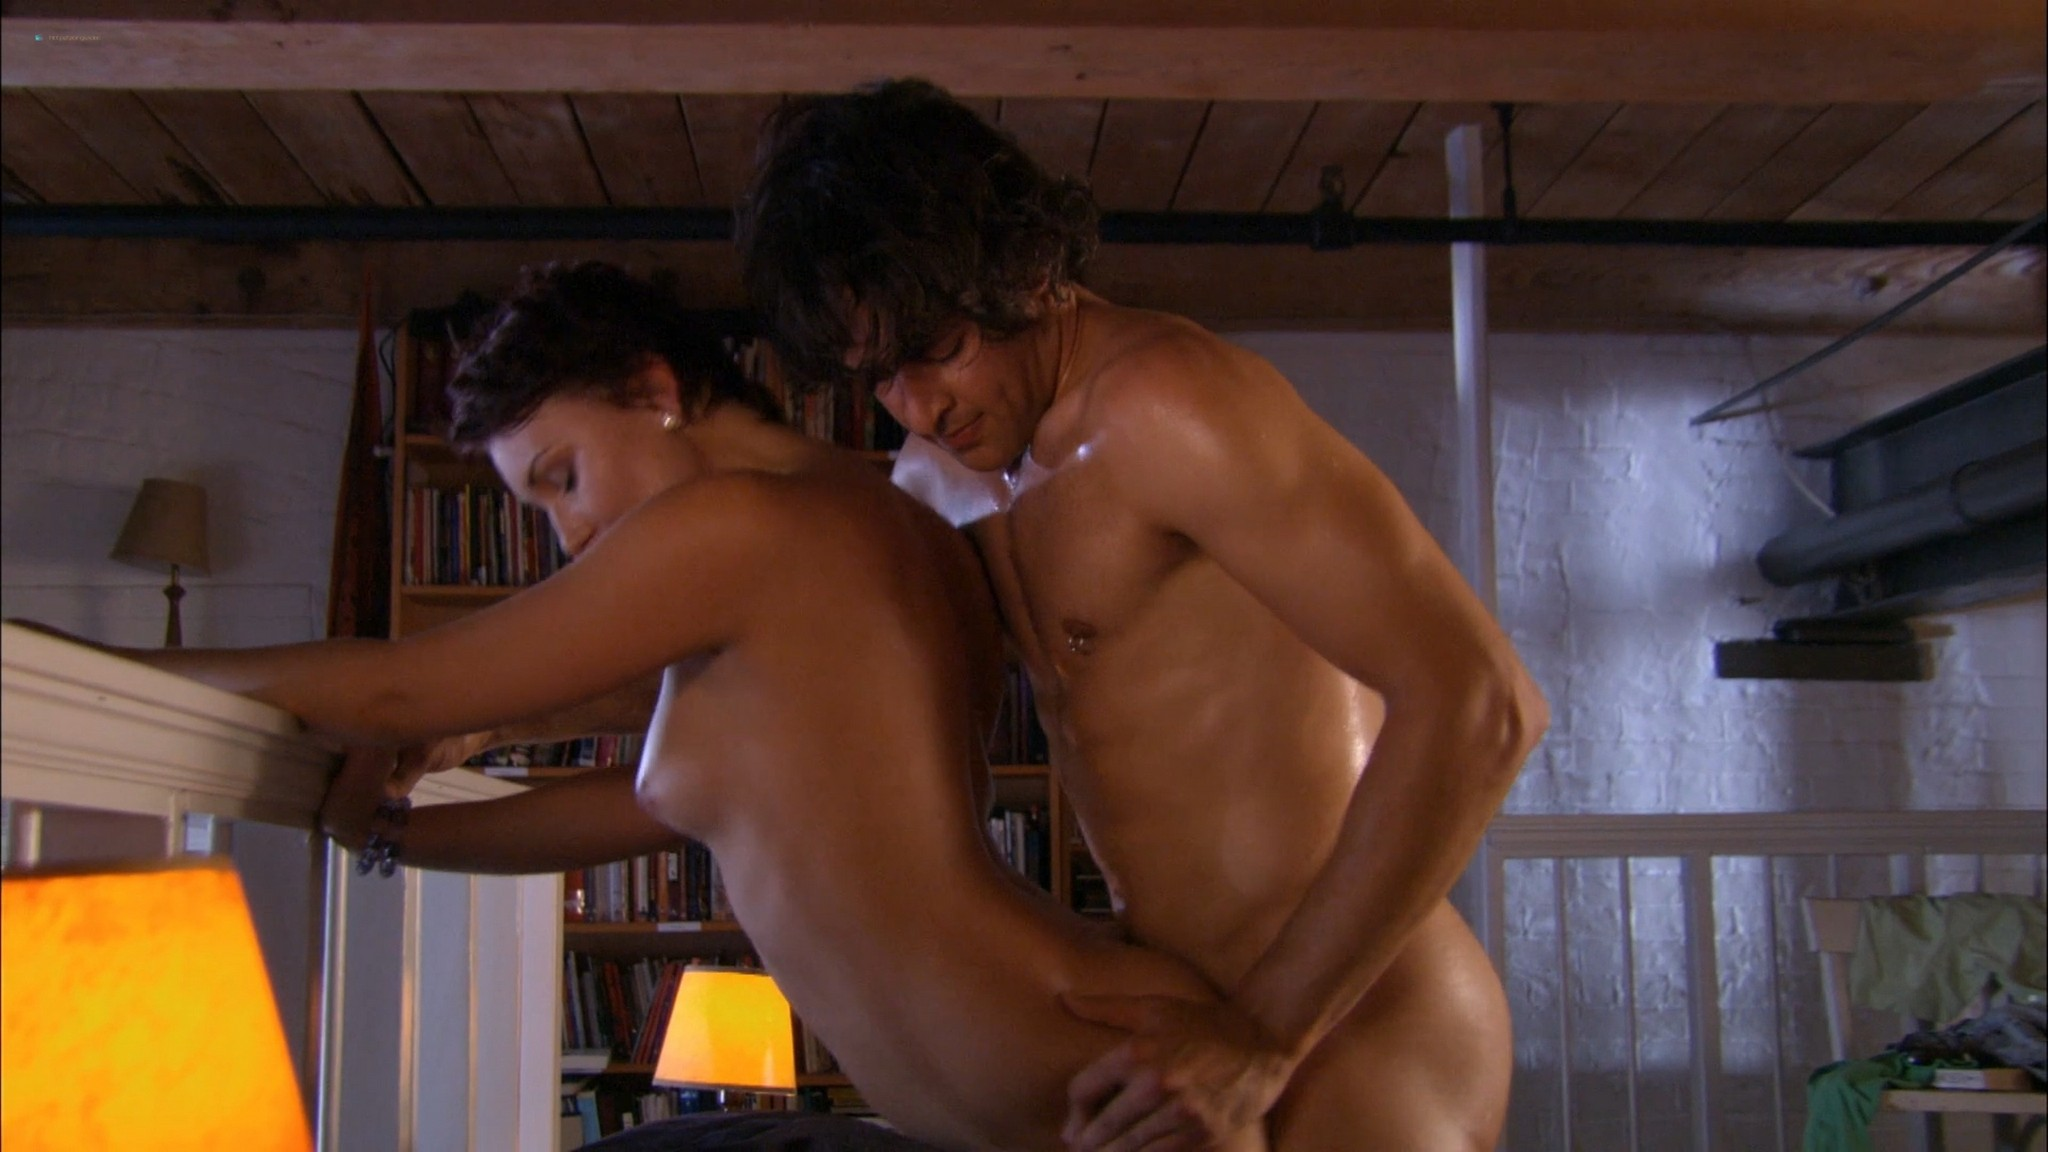 Amber Smith nude hot sex Noelle DuBois and others nude sex Lingerie 2009 s2e12 1080p Web 4